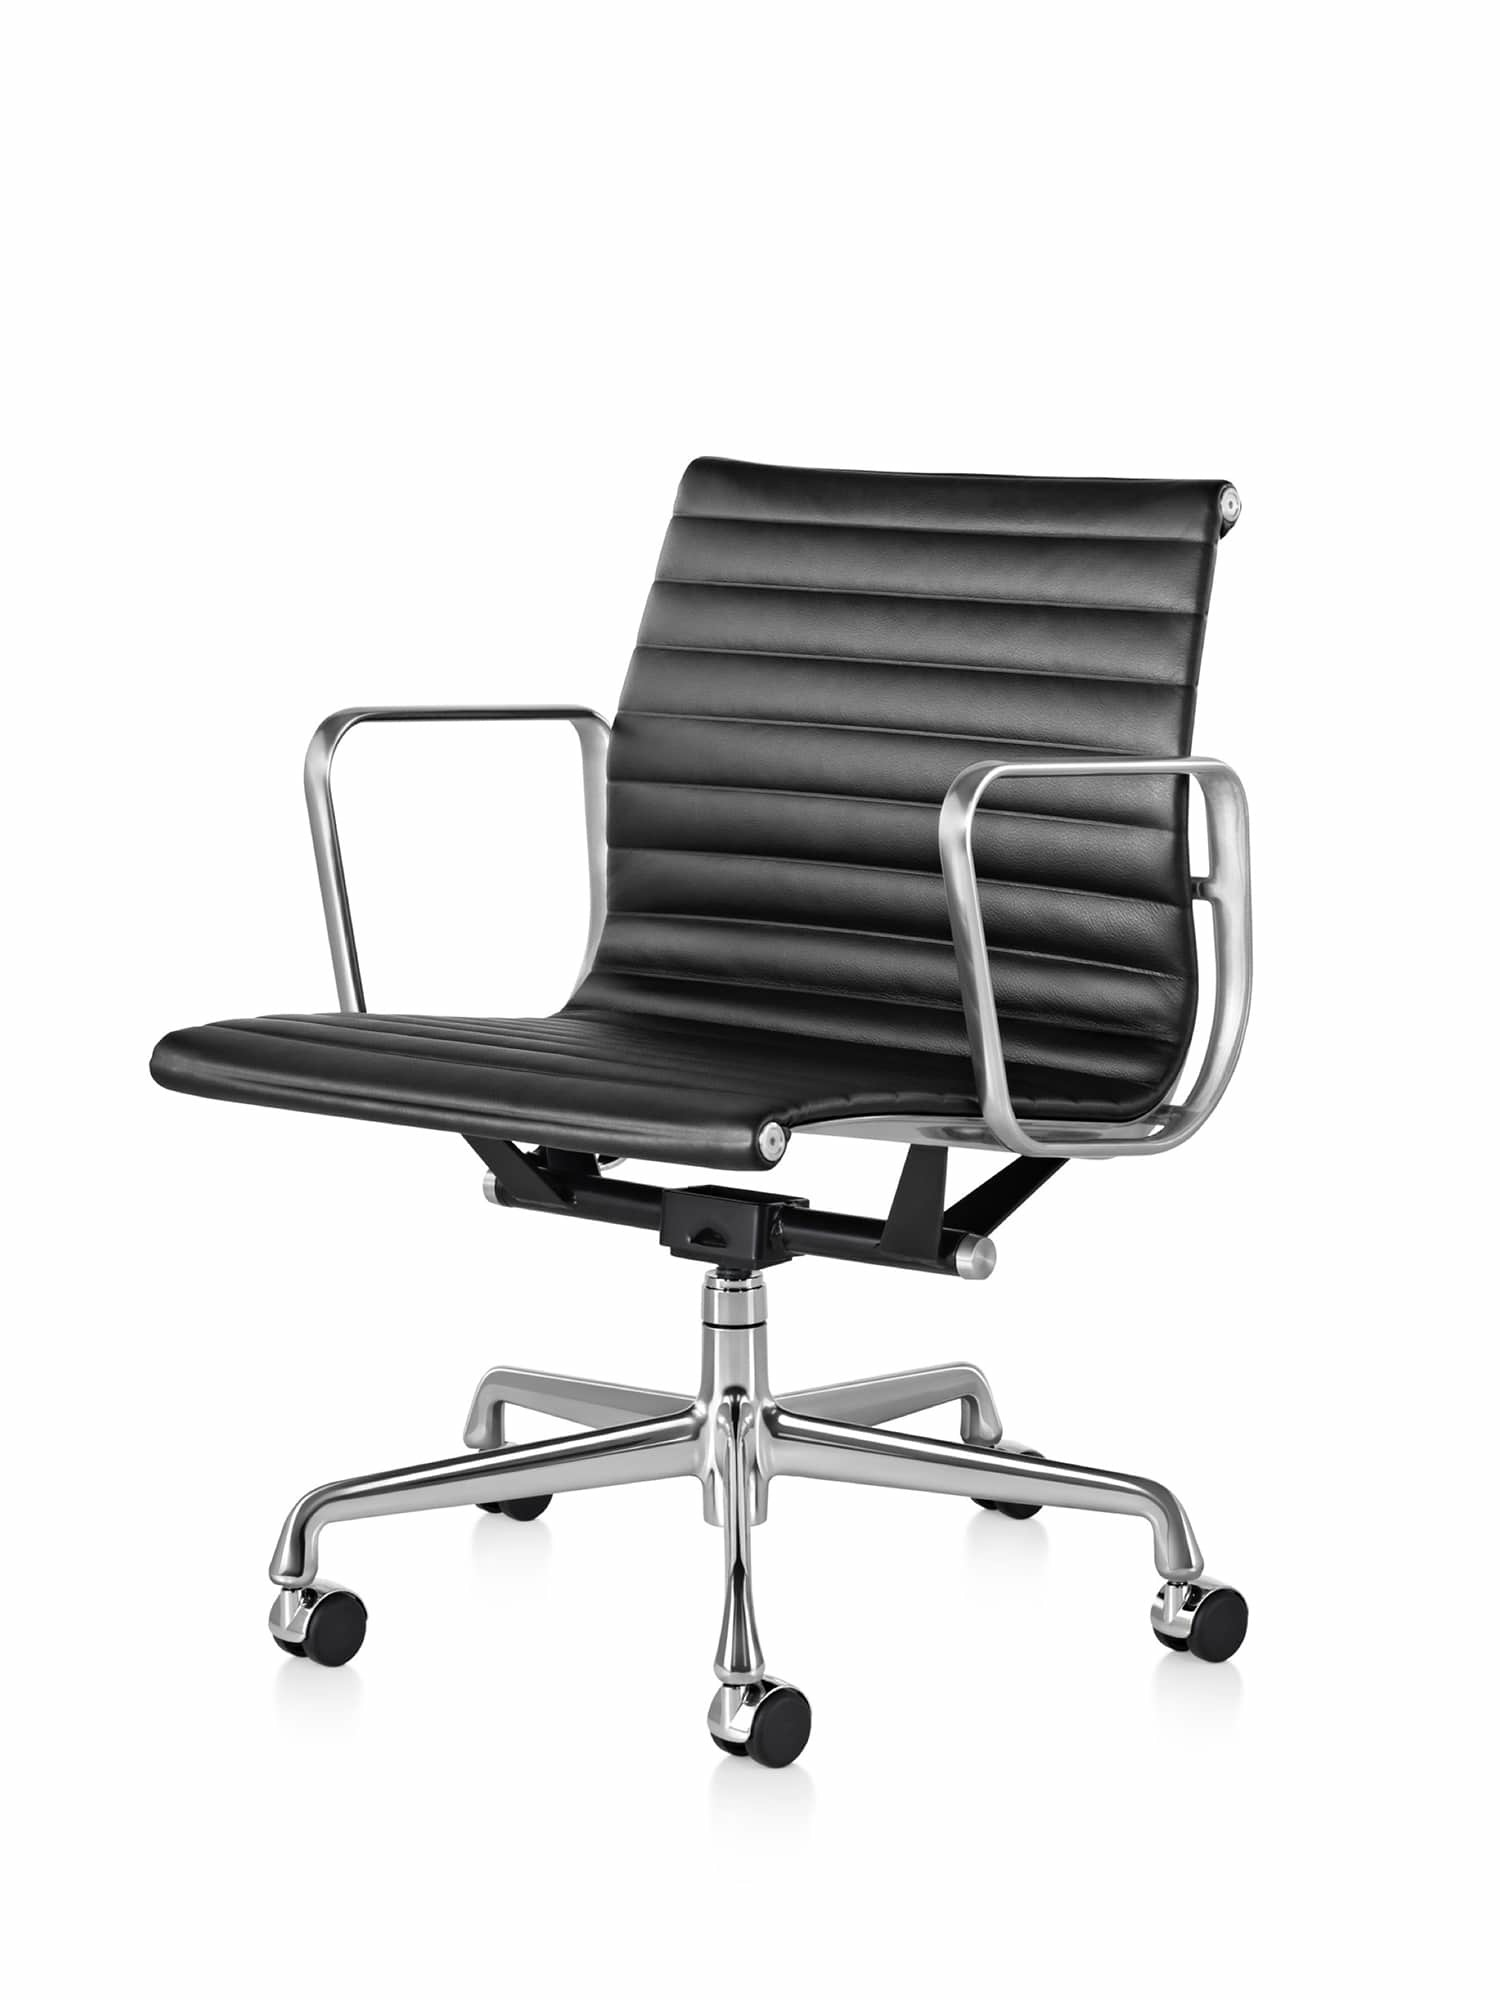 Herman Miller Eames Alumium Group conference or executive task chair in Management Height